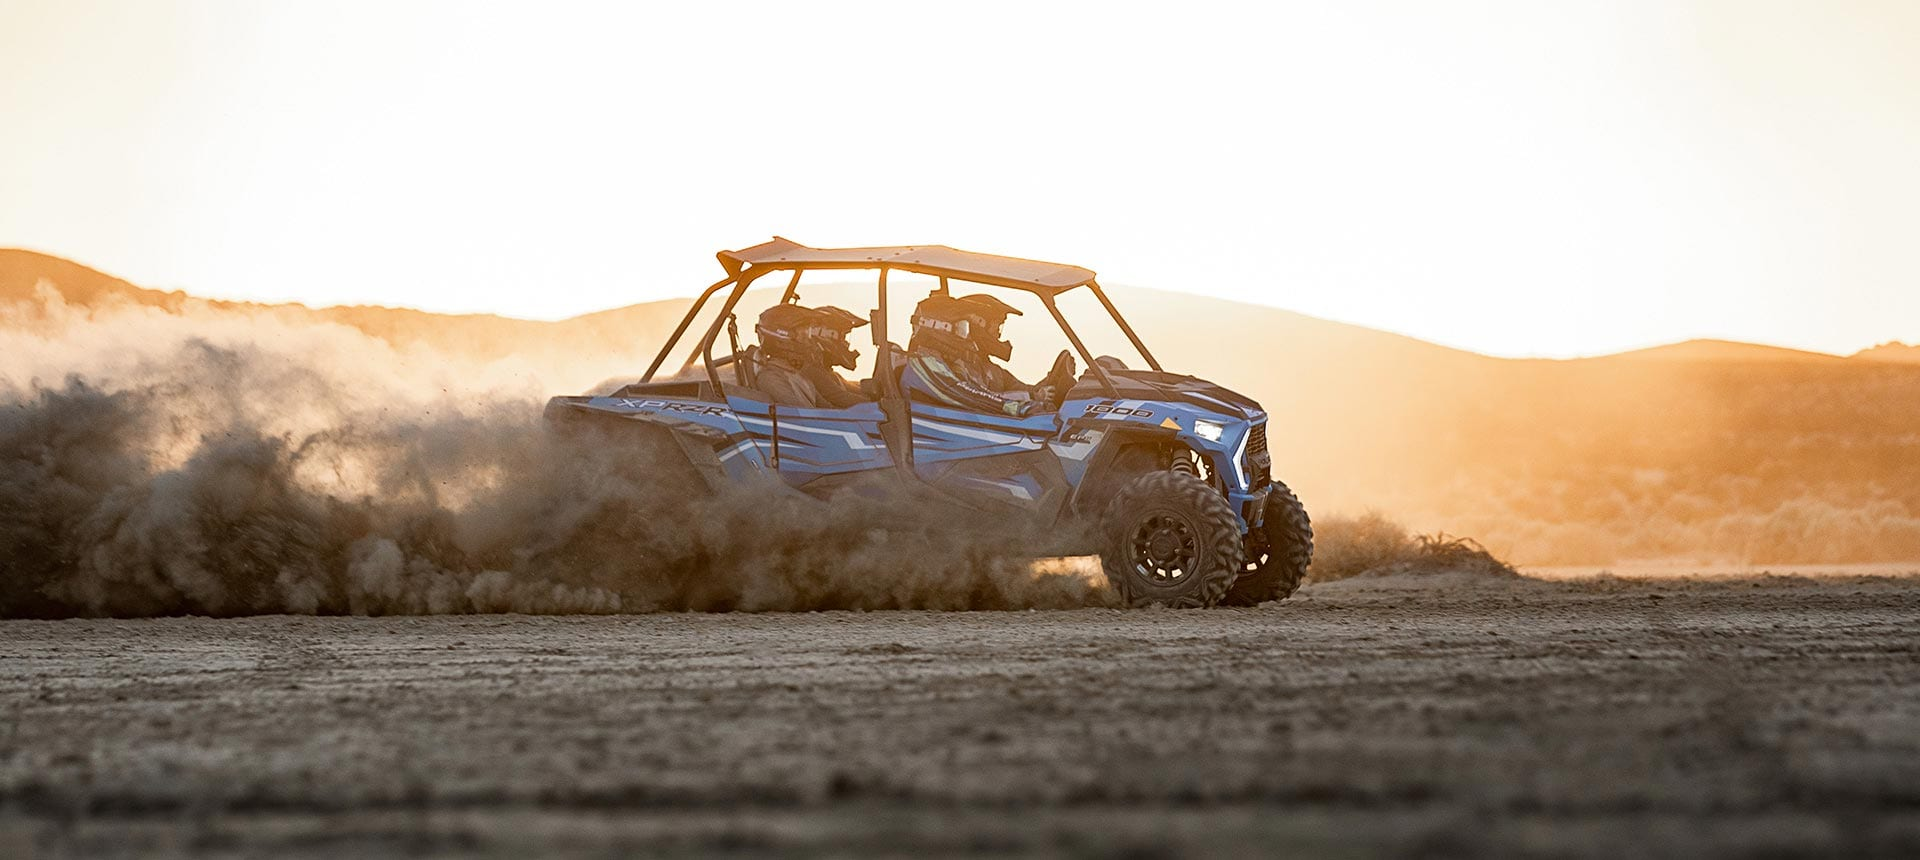 RZR XP 4 1000 4 SEATER OFFROAD VEHICLE